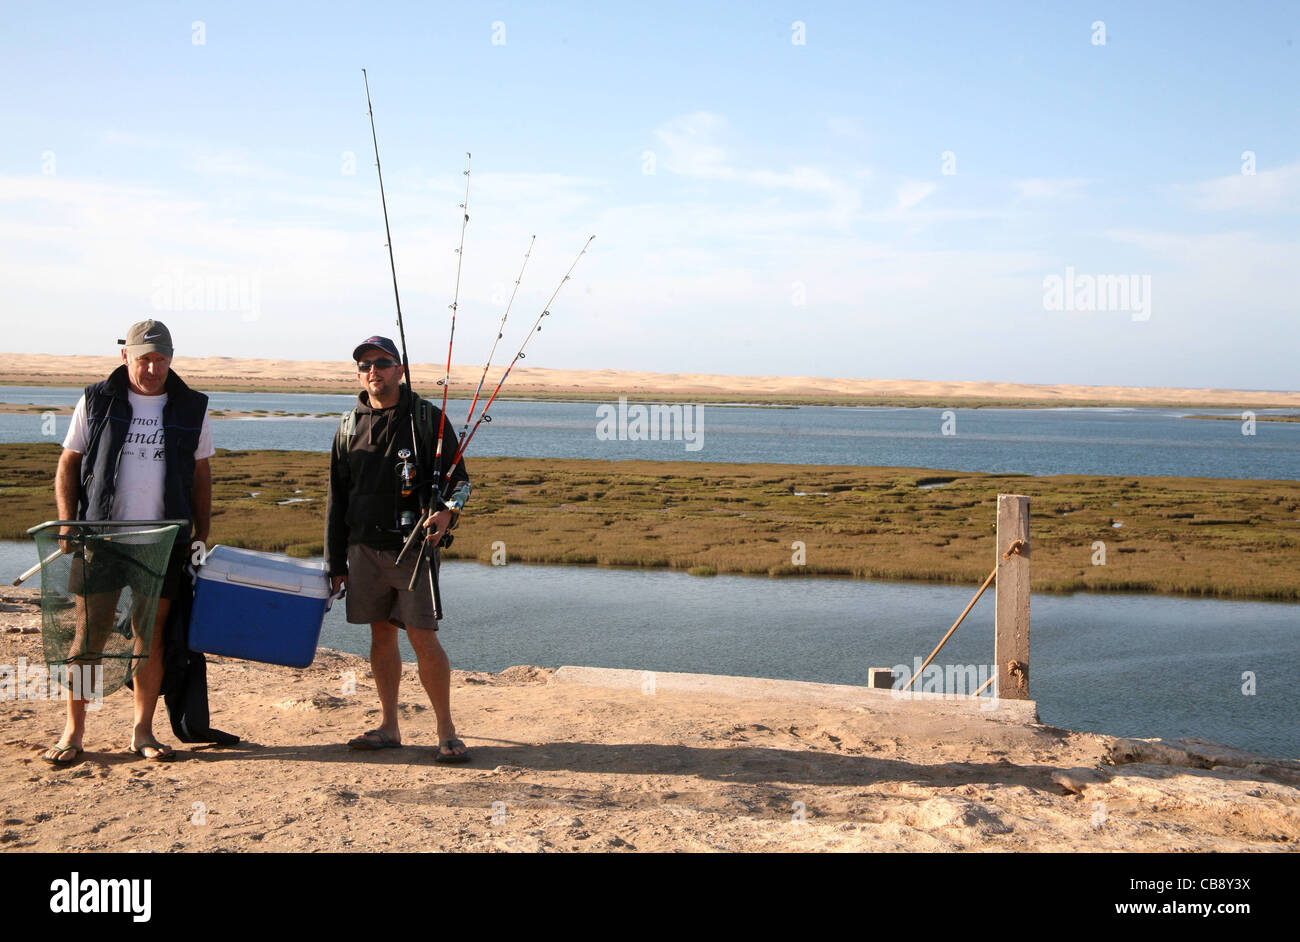 Two French fishermen pictured at Lac Naila in the Western Sahara - Stock Image